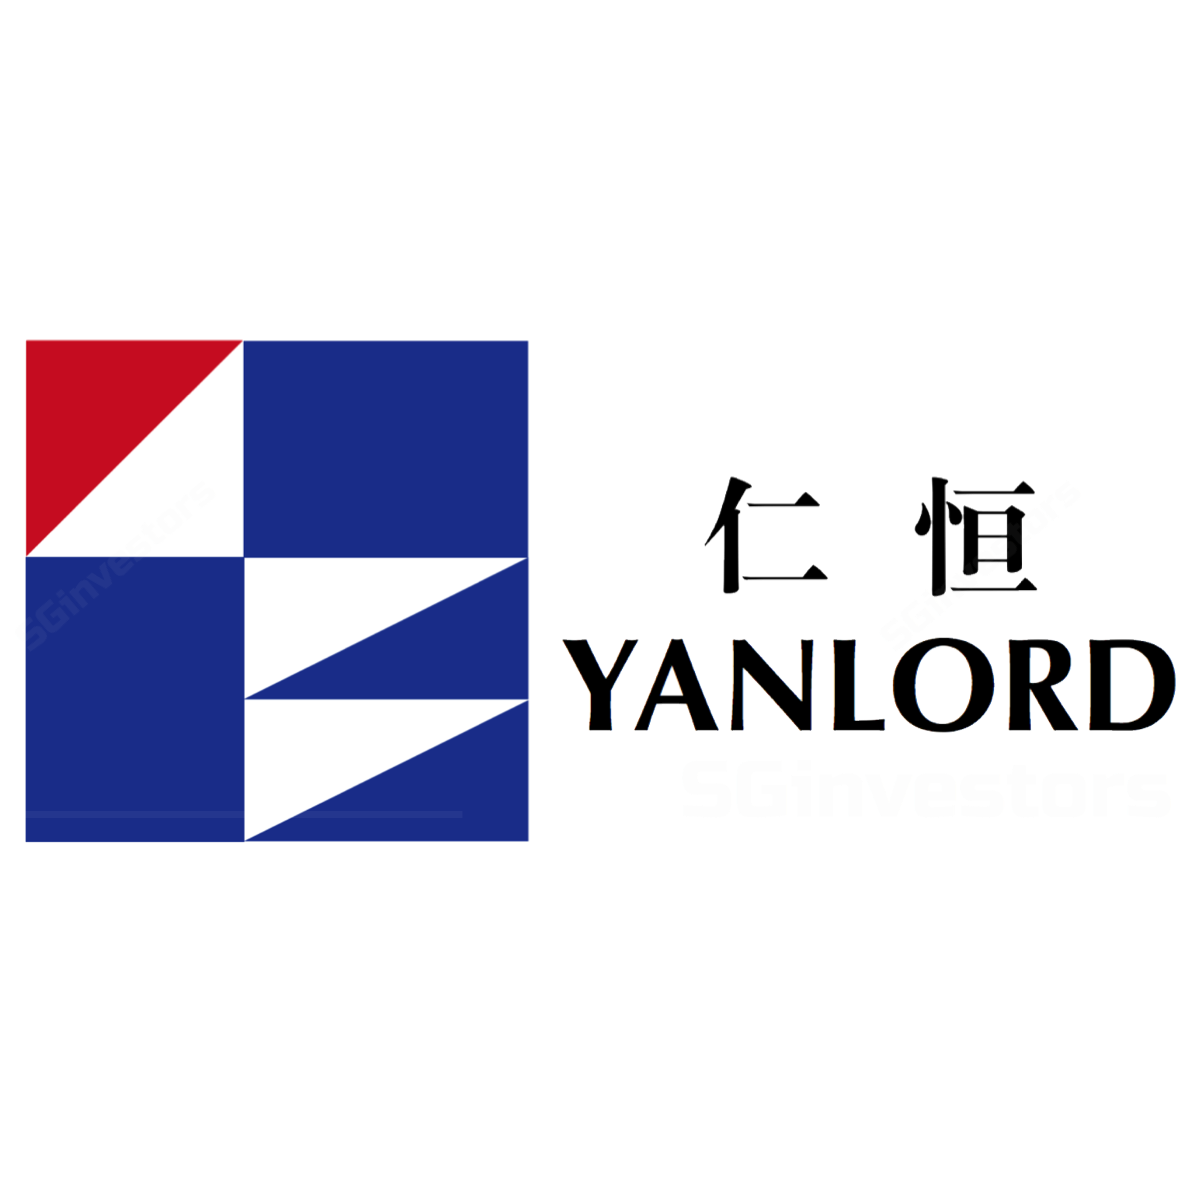 Yanlord Land Group (YLLG SP) - DBS Vickers 2017-11-16: A High-margin Play